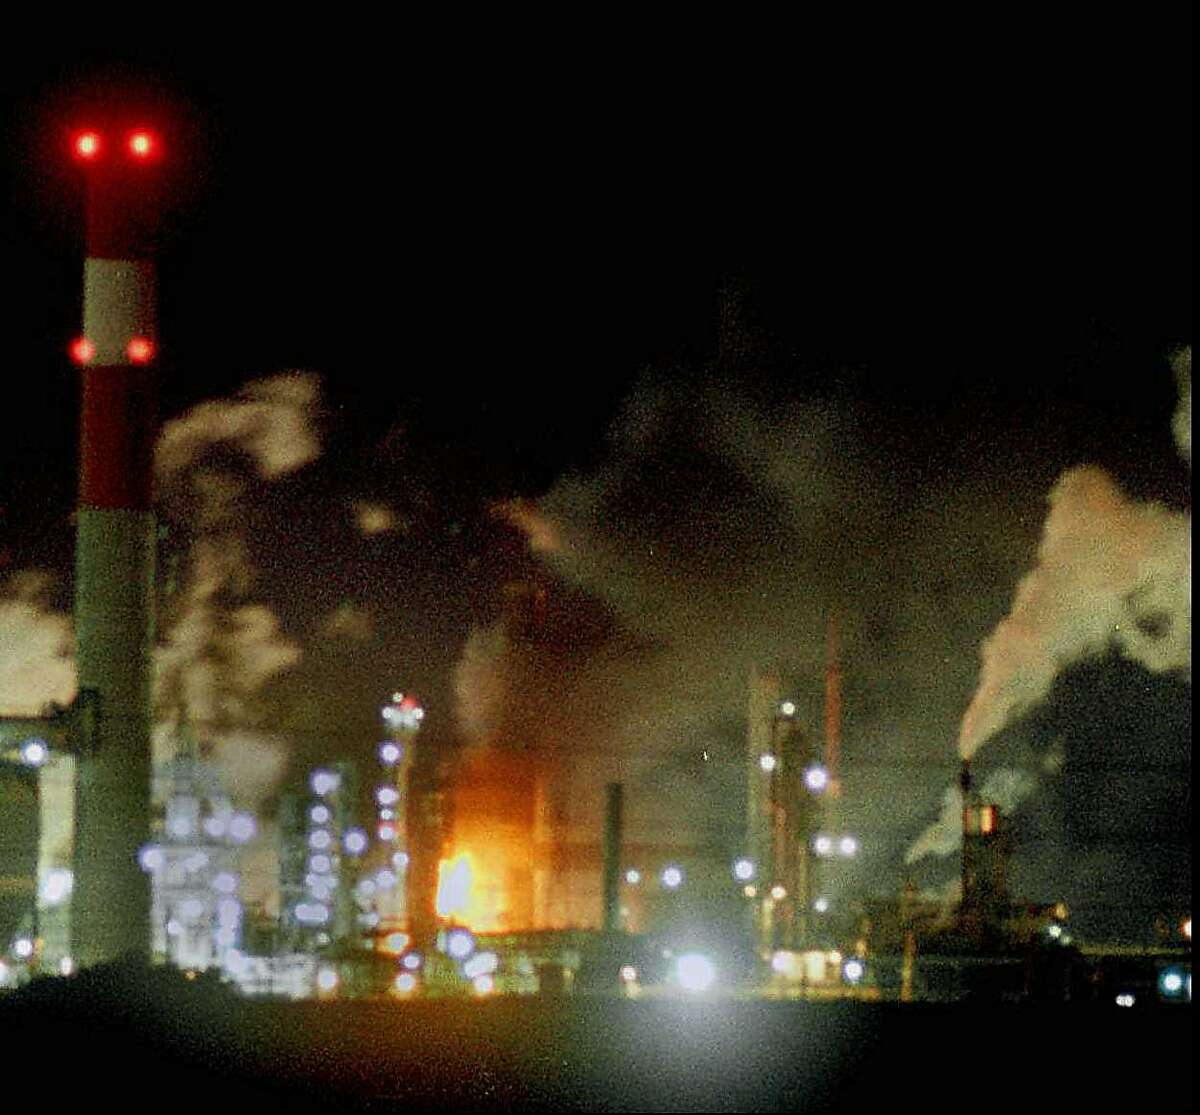 Flames can be seen at the Tosco Refinery Co. following an explosion Tuesday night Jan. 21, 1997 near Martinez, Calif. The fire was located in the center of the refinery seen here from about a mile away. (AP Photo/Contra Costa Times, Damien Stark)